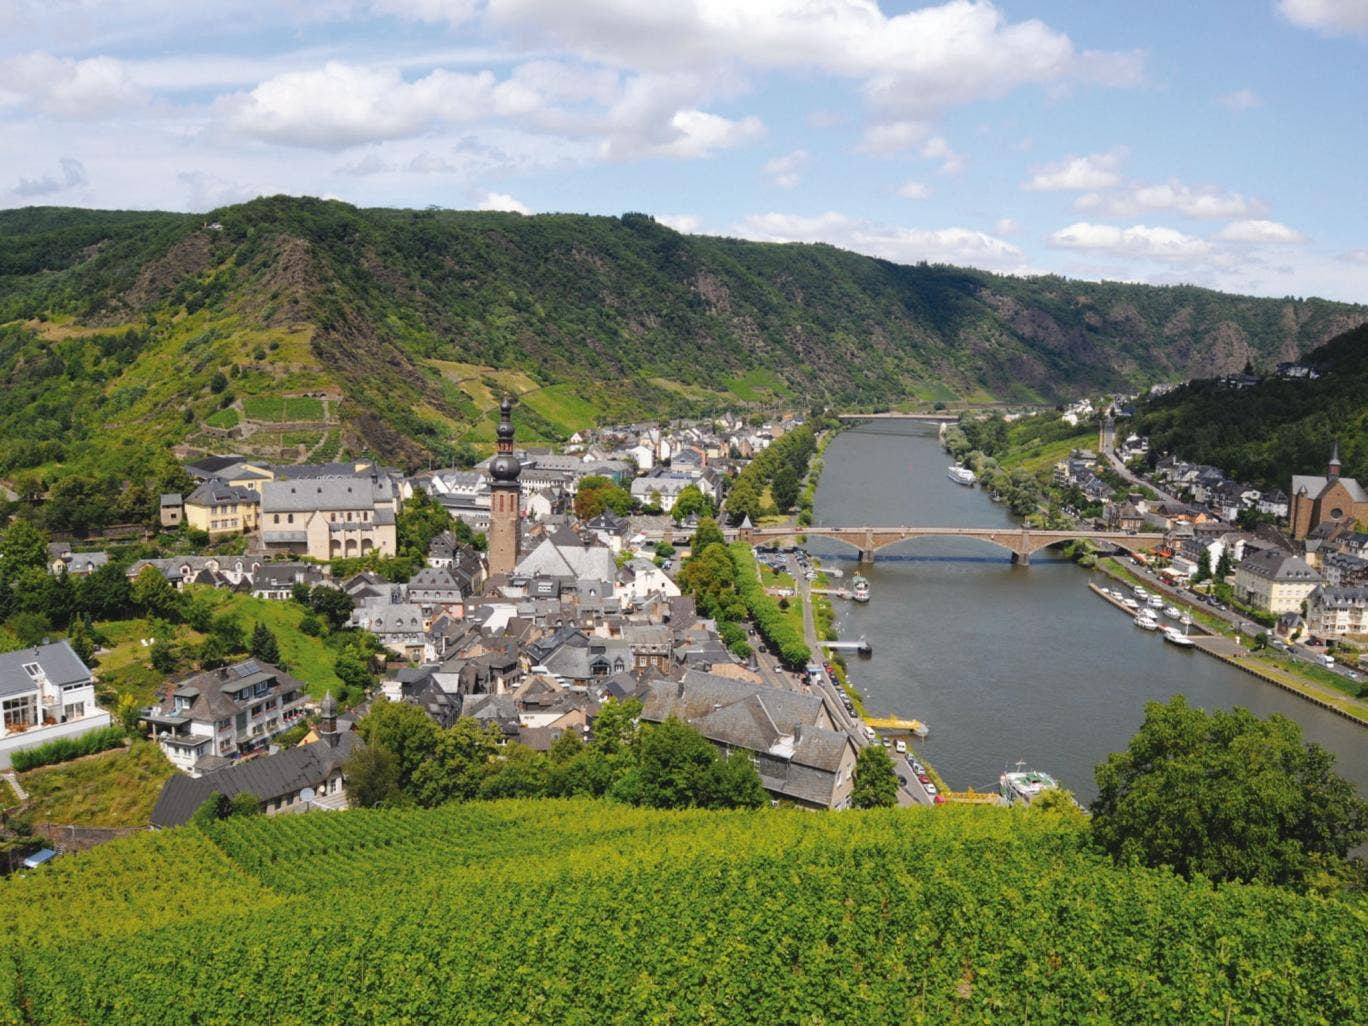 The Rhine in Germany